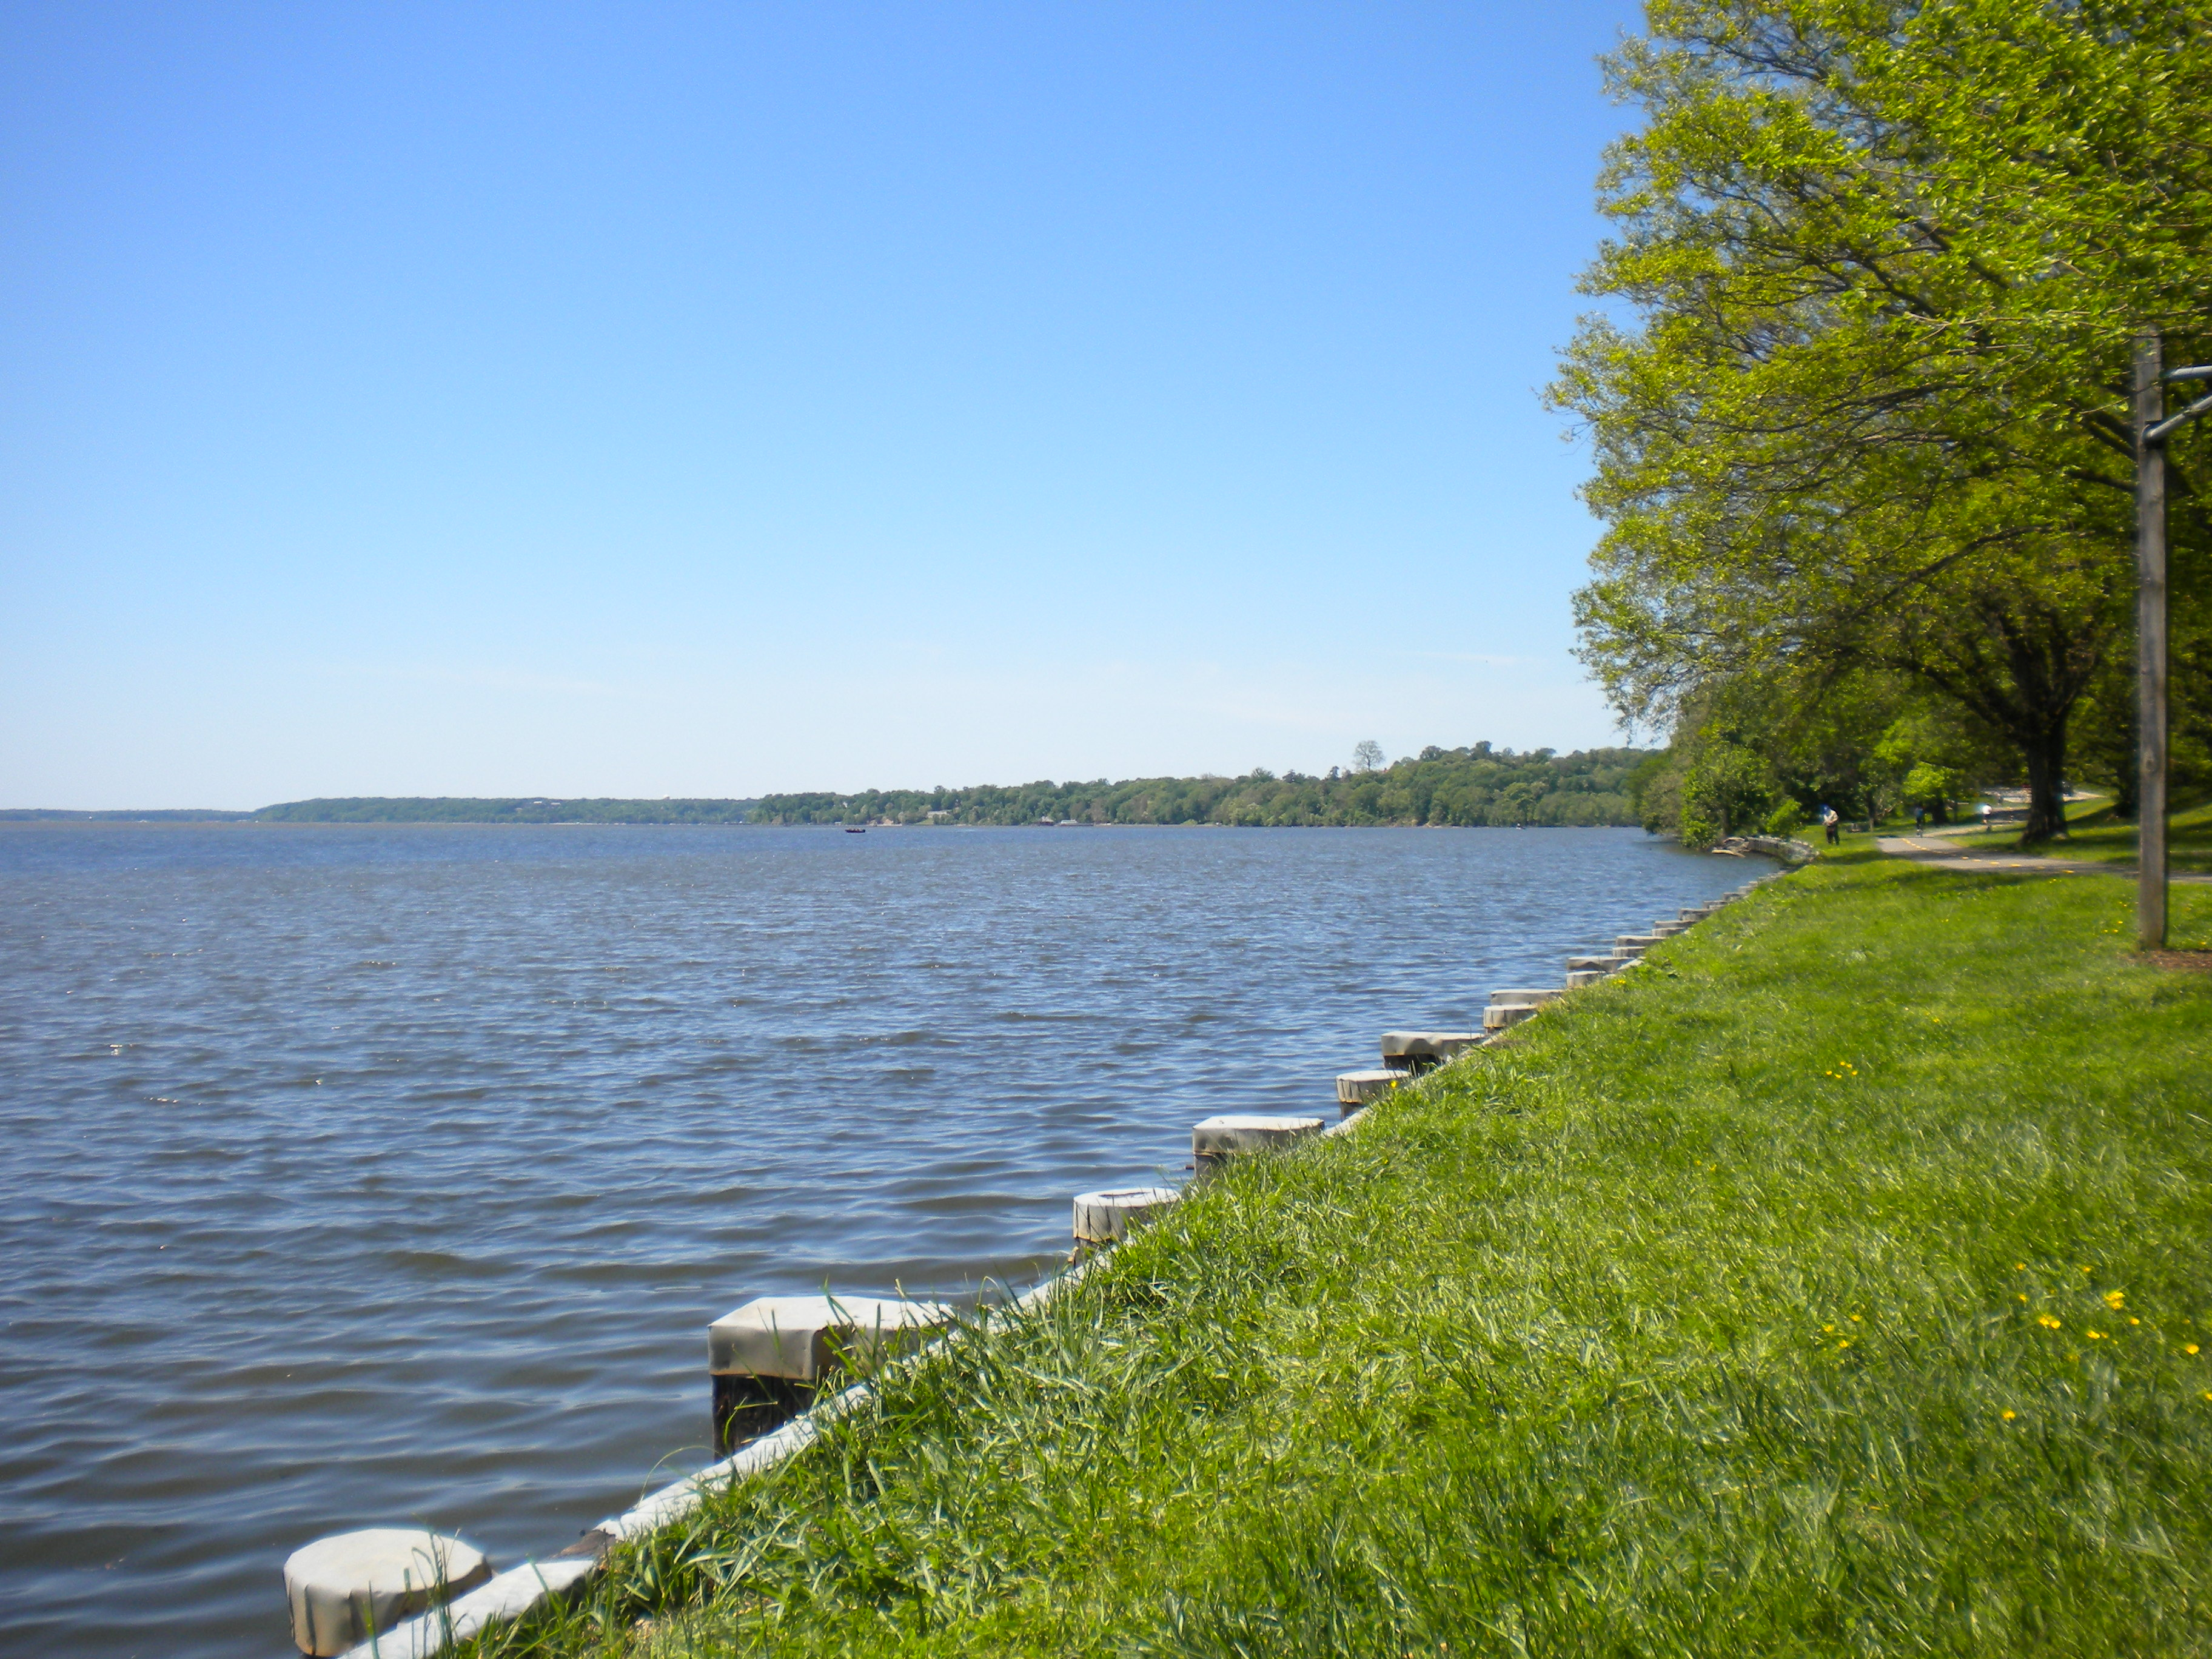 Banks of the Potomac near Mount Vernon